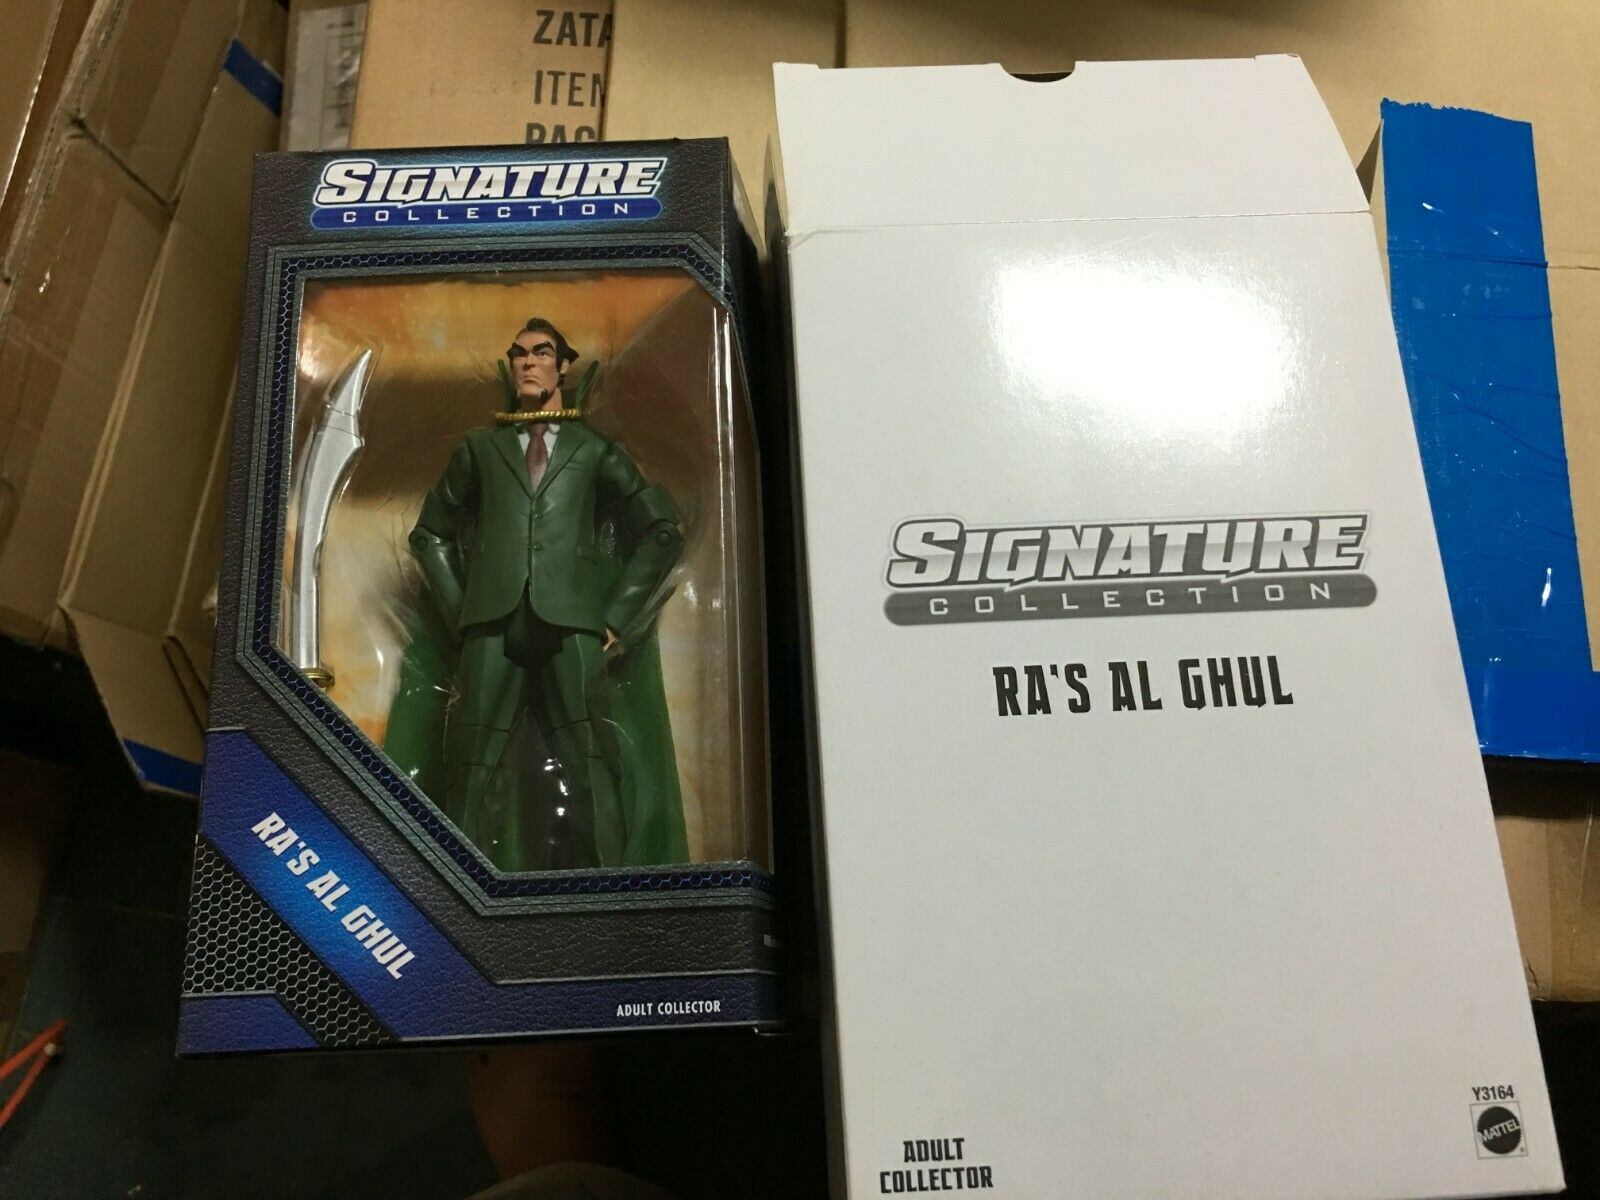 MATTEL DC UNIVERSE SIGNATURE COLLECTION RA'S AL GHUL UNOPENED